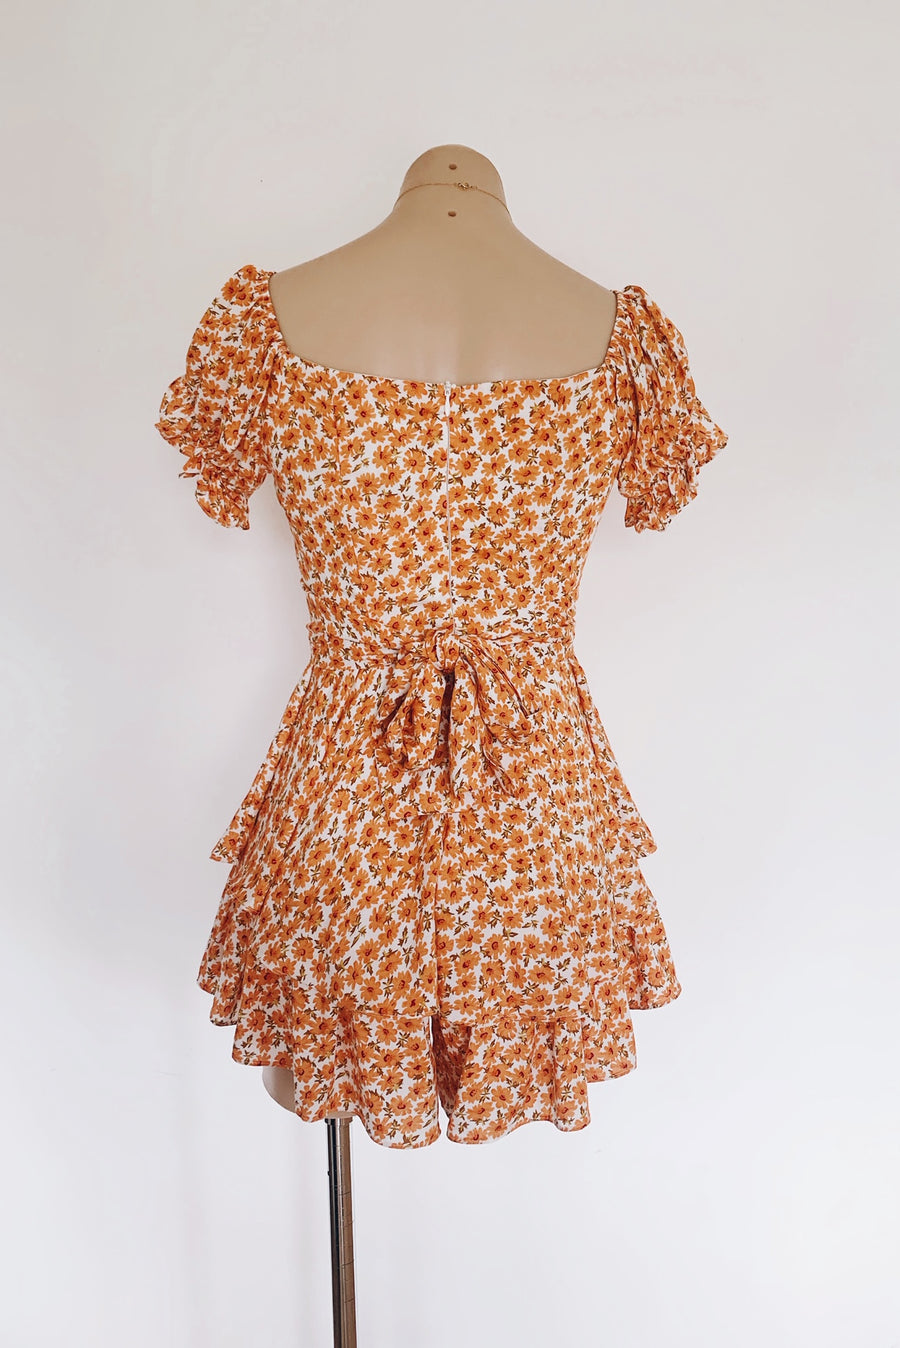 Daisy Playsuit for $85.00